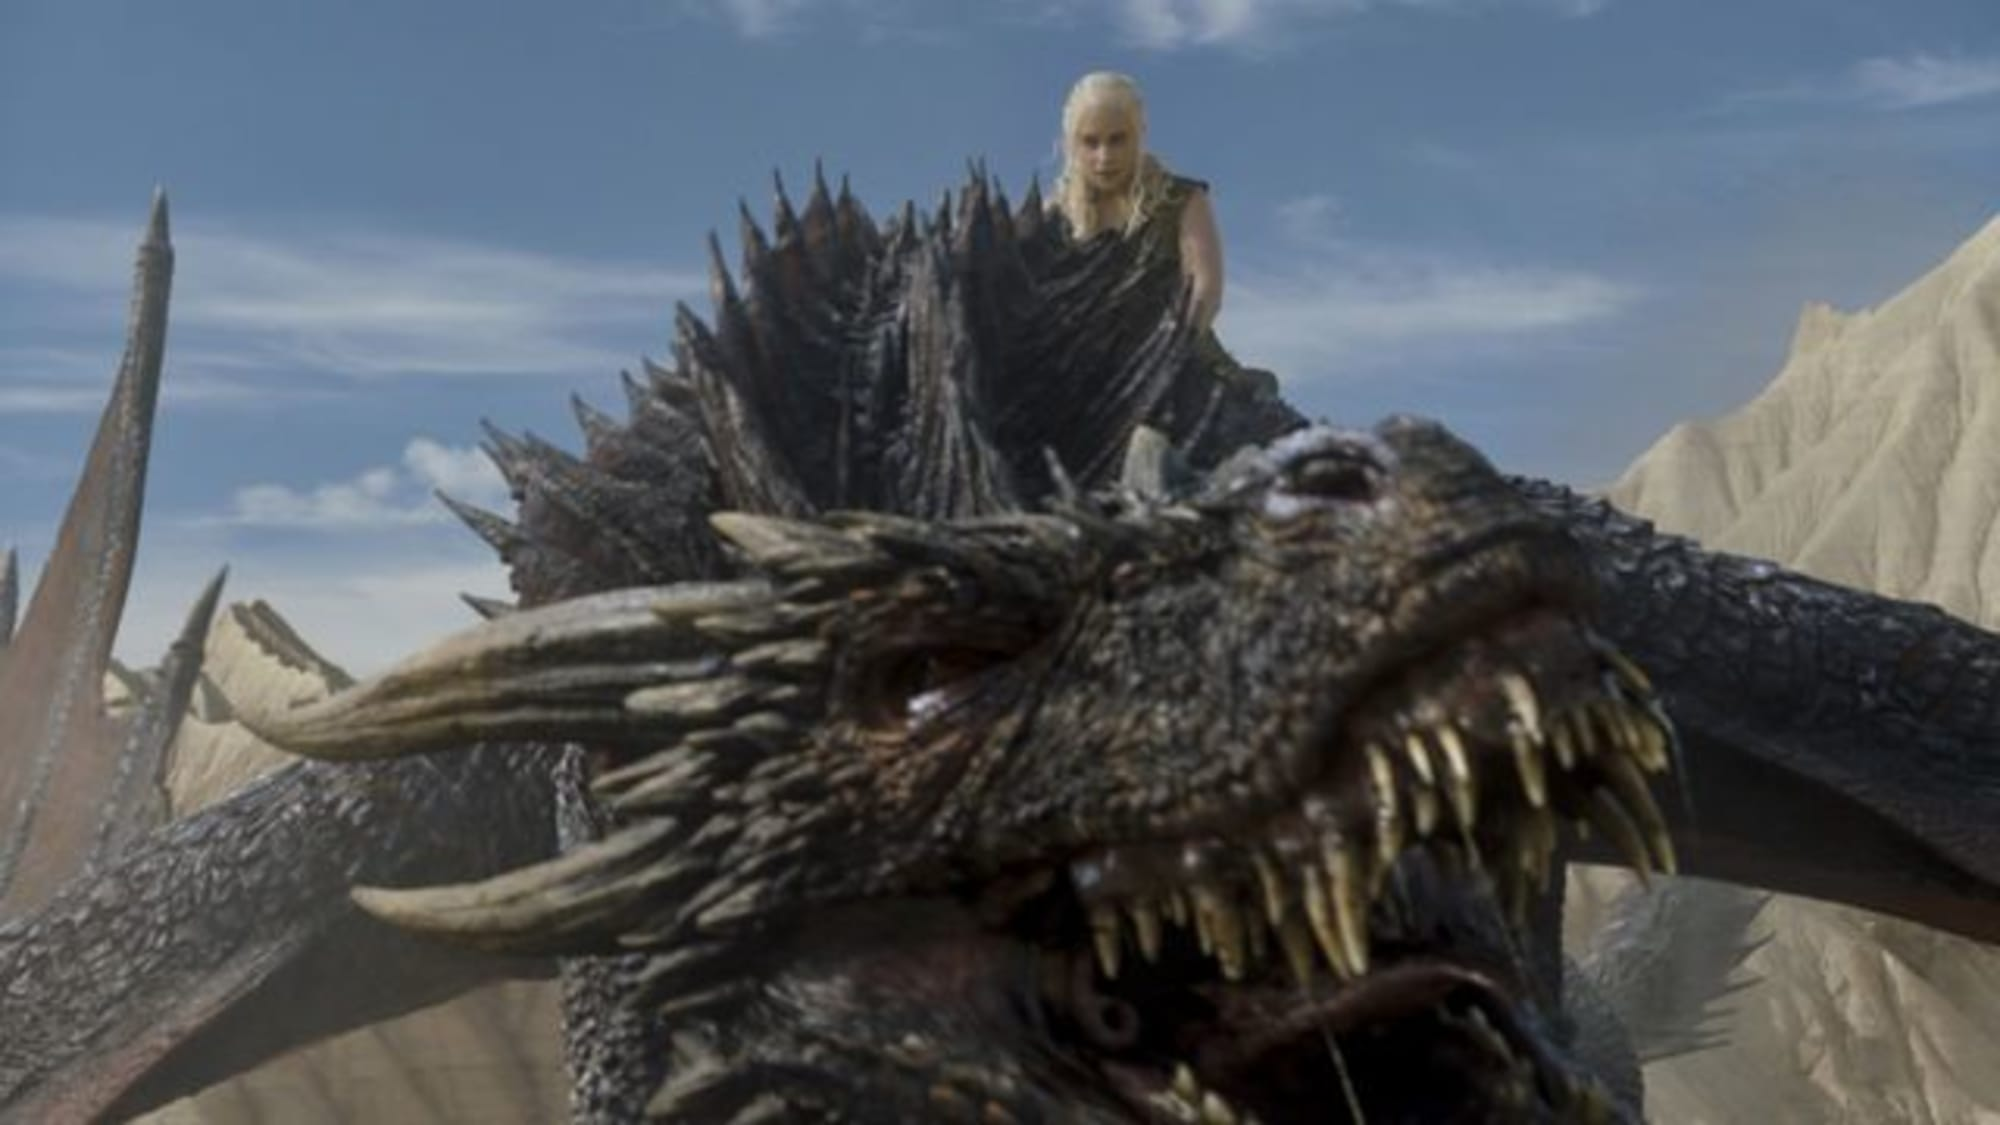 We'll learn more about the bonds between dragons and humans in future Game of Thrones books